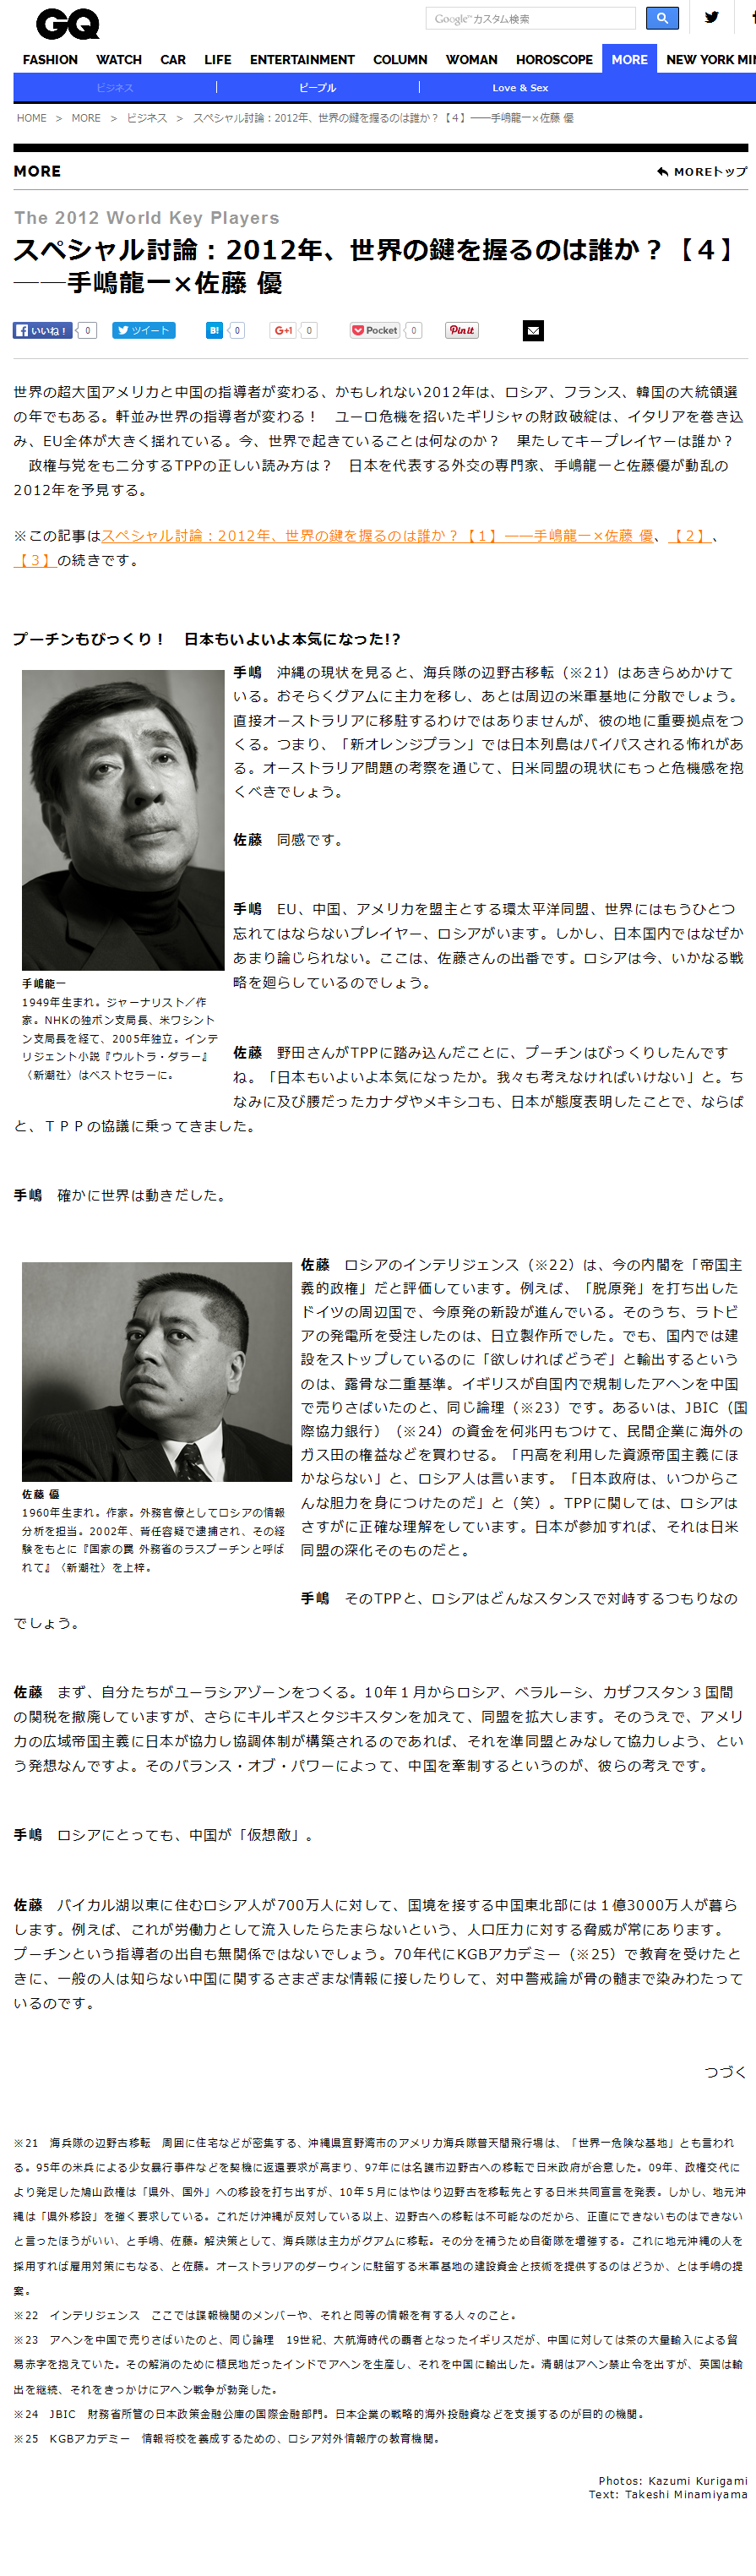 http://gqjapan.jp/more/business/20120125/keyplayers4